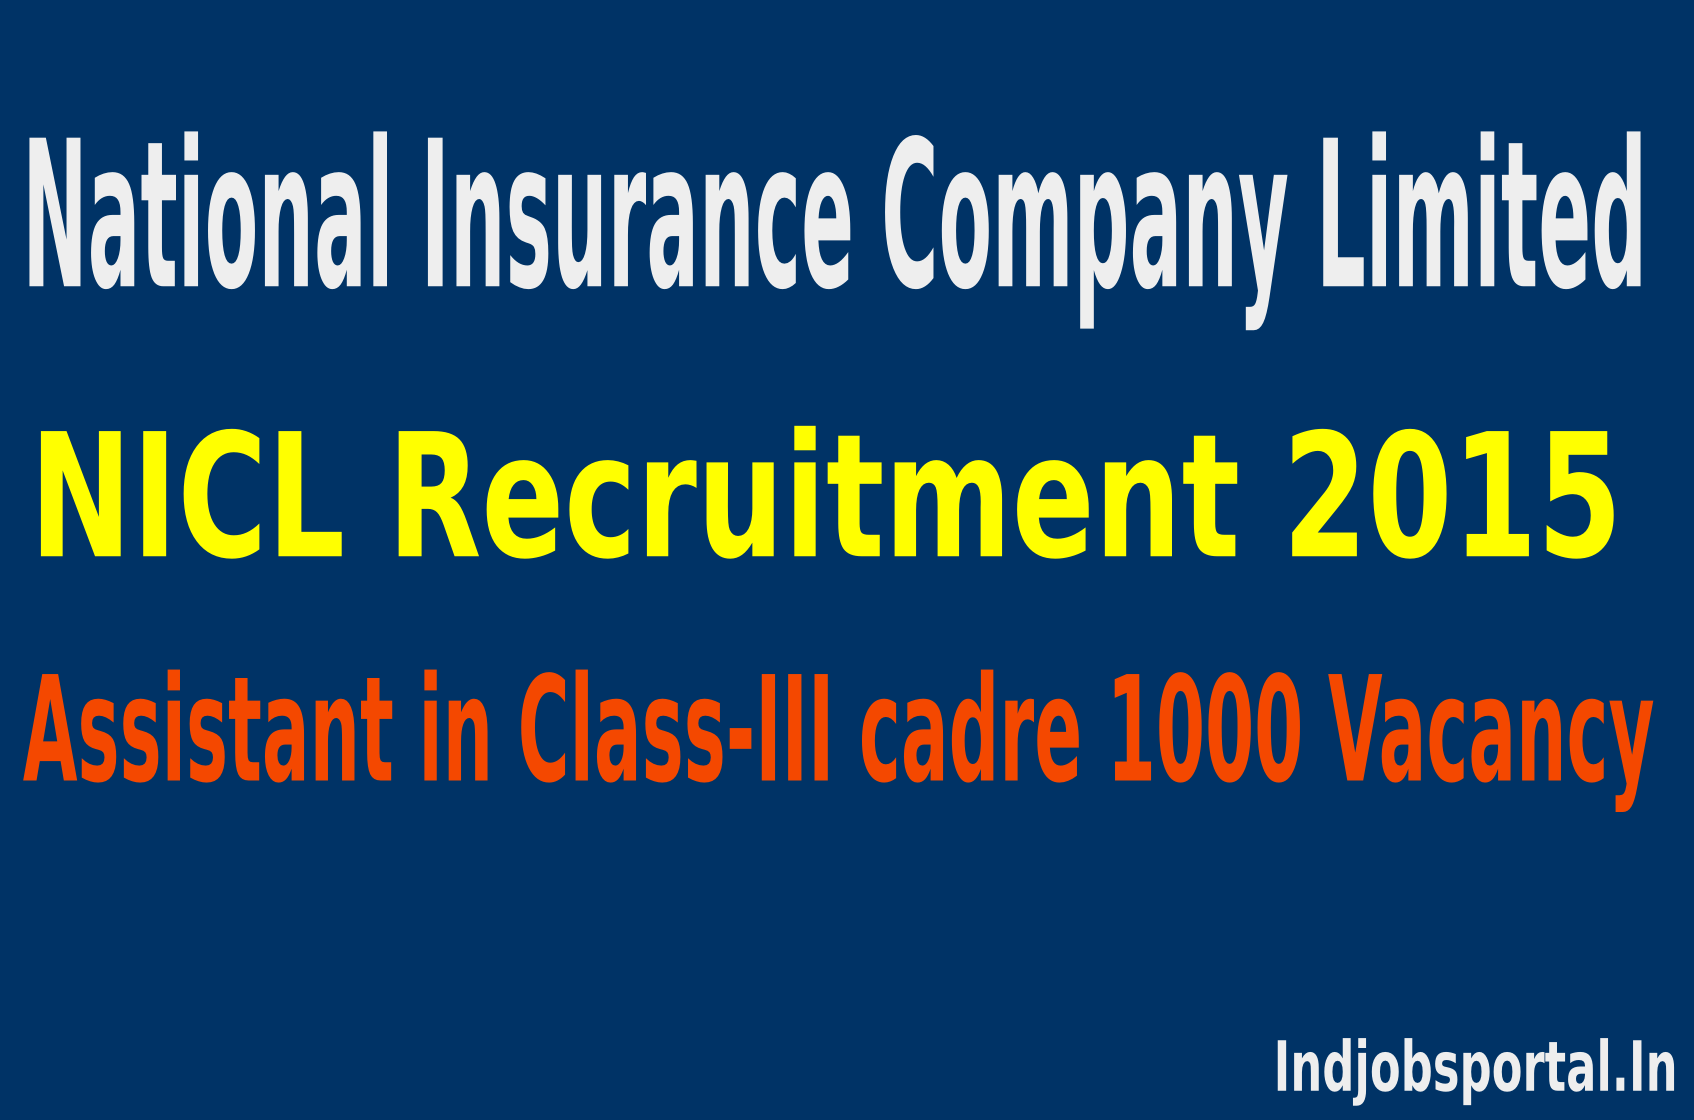 NICL Recruitment 2015 Apply Online For 1000 Assistant Posts